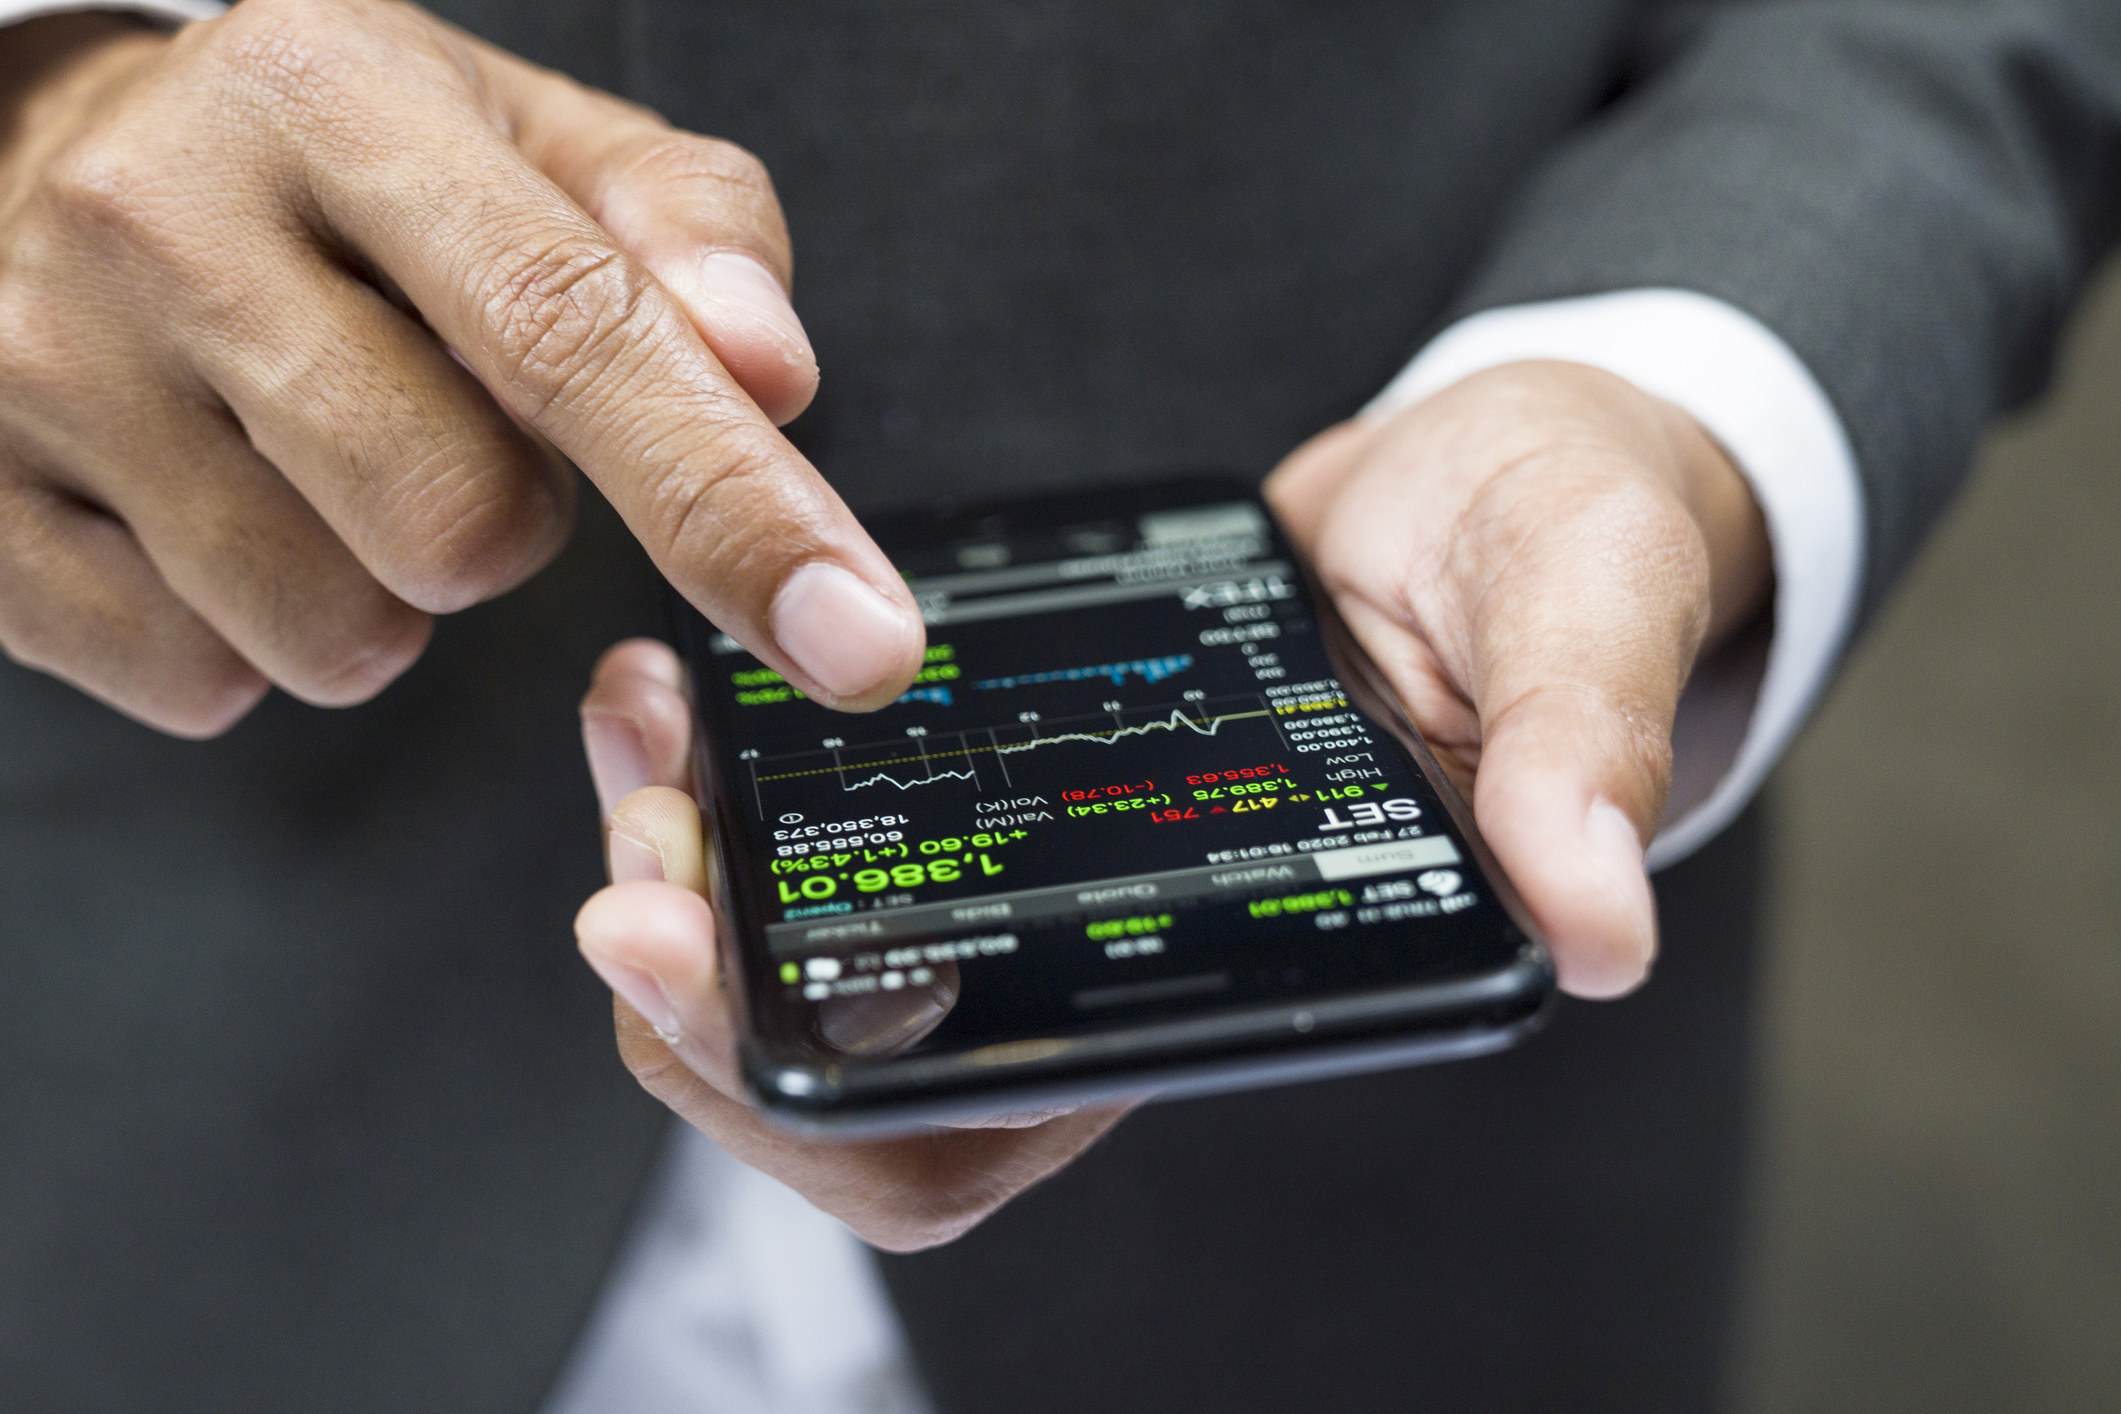 Person investing on a phone